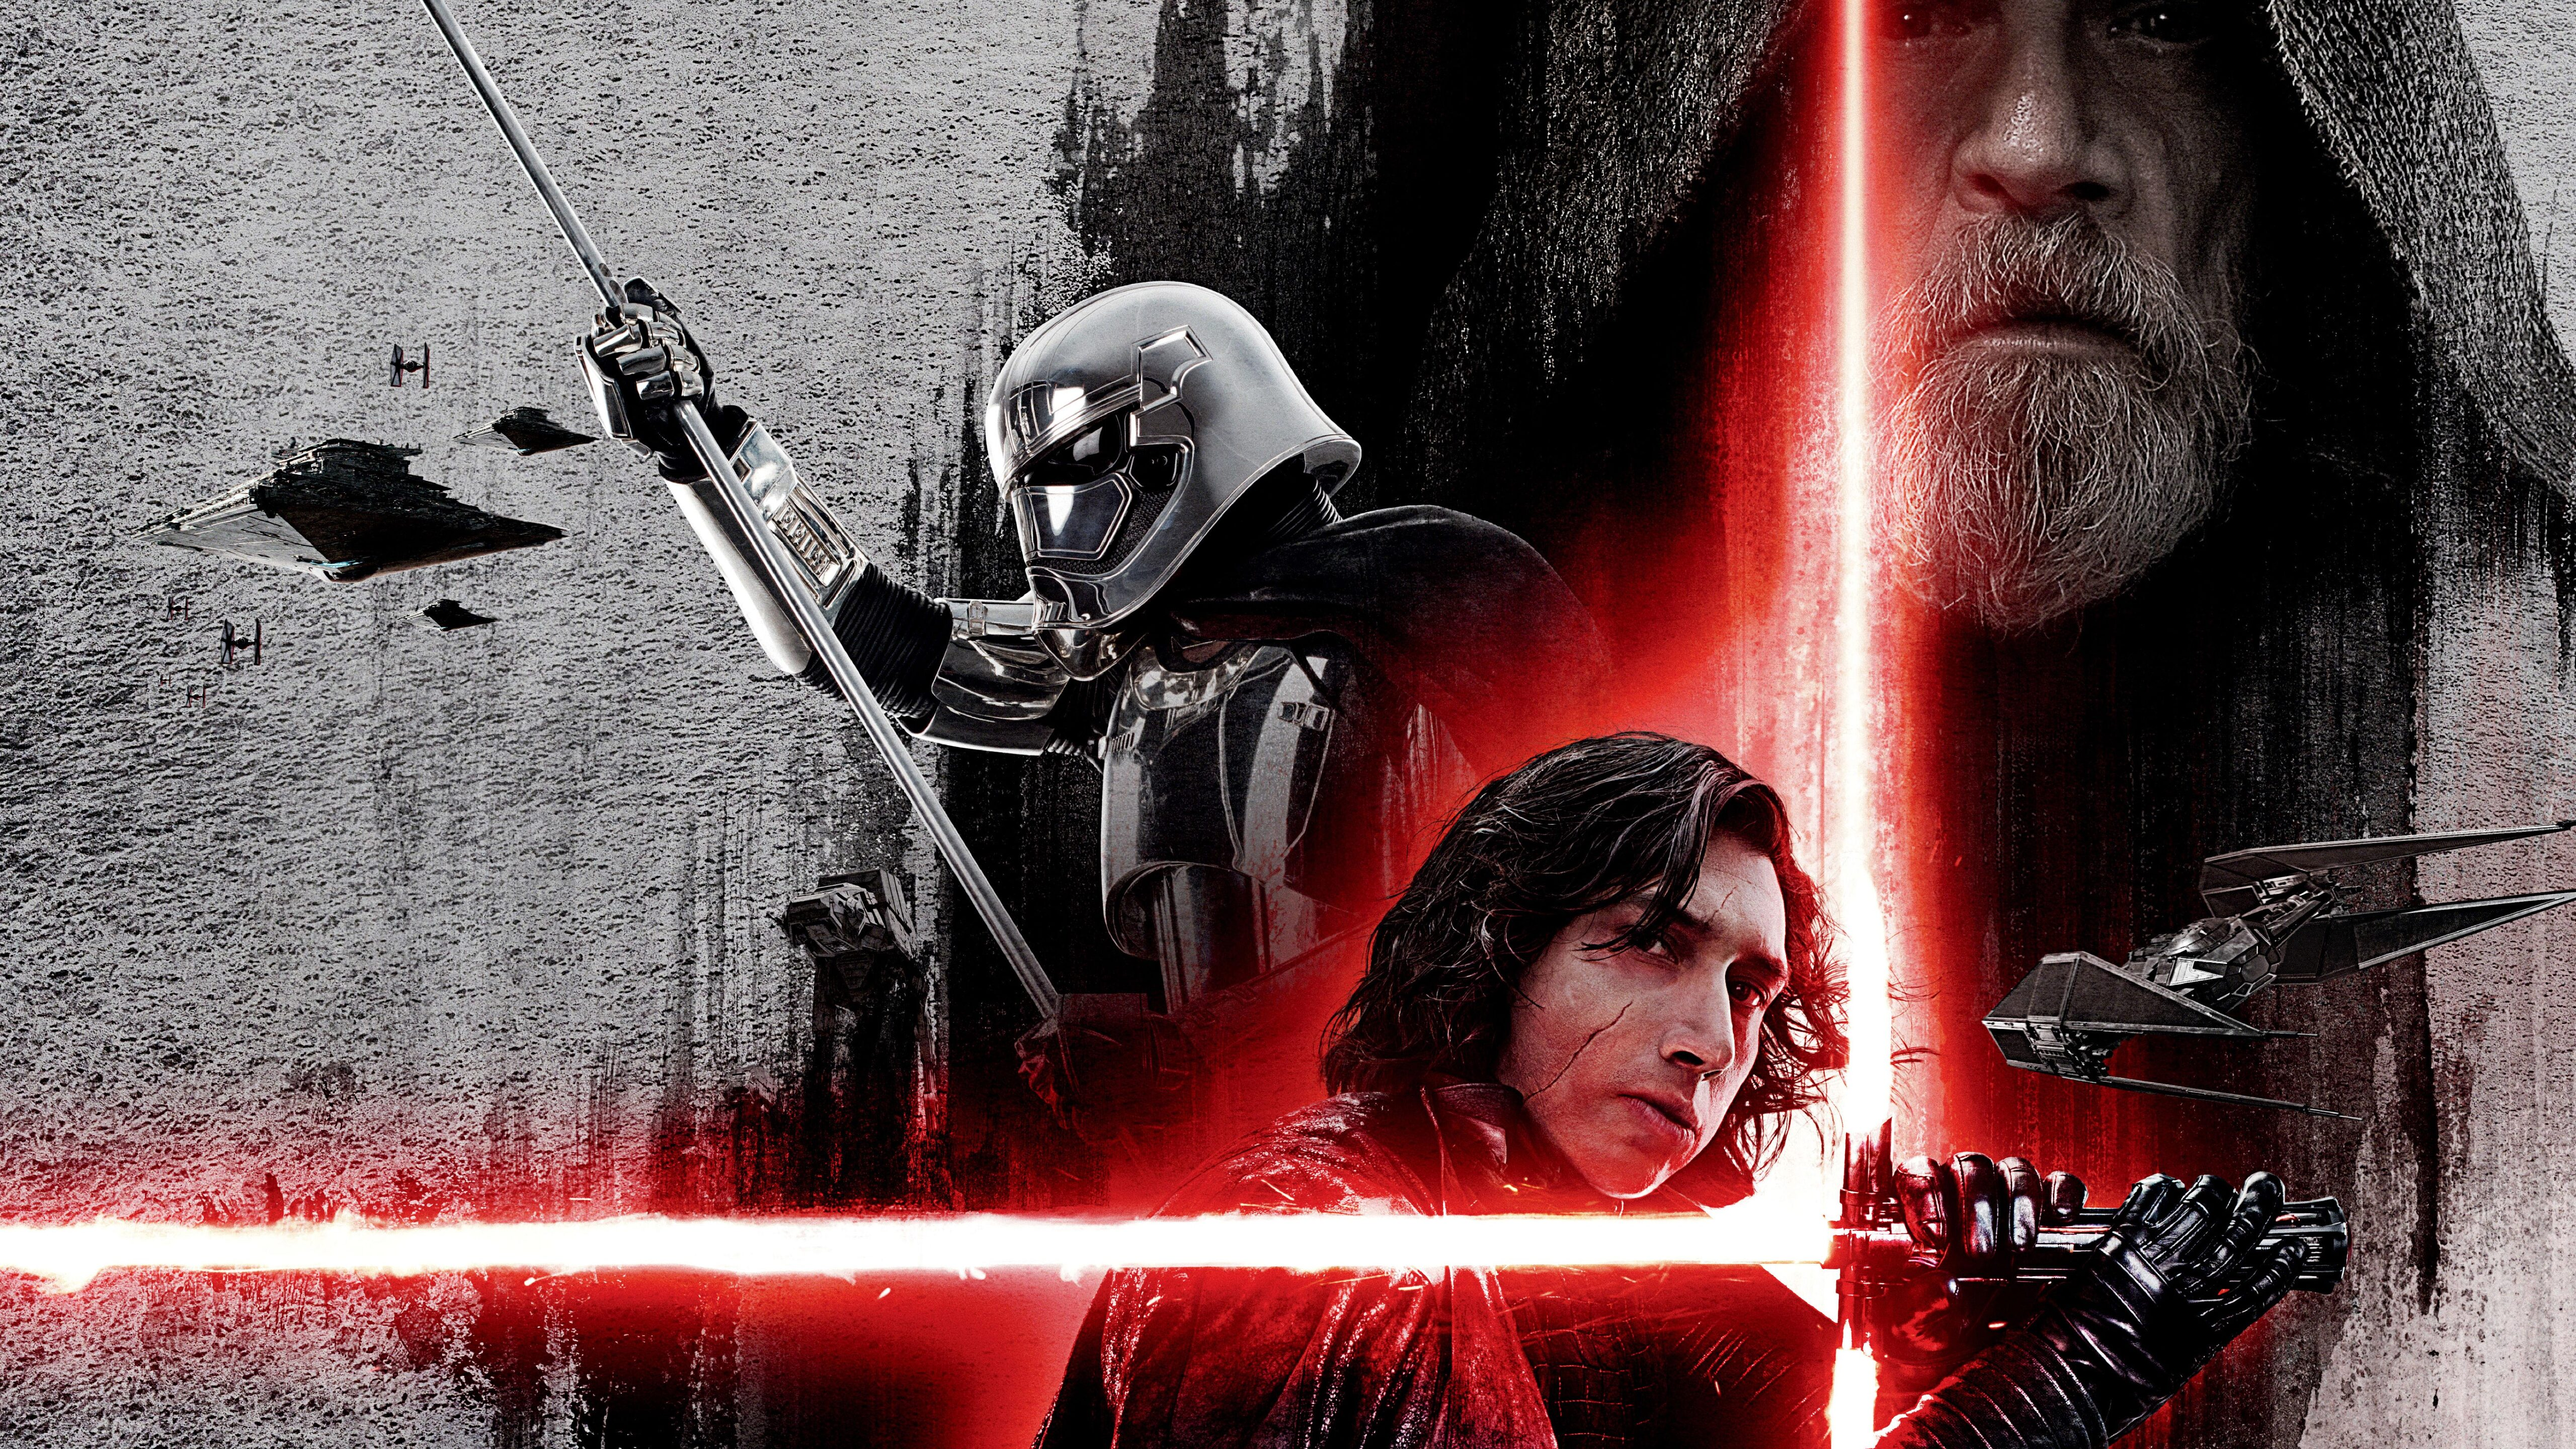 5120x2880 Star Wars The Last Jedi 2017 5k 5k Hd 4k Wallpapers Images Backgrounds Photos And Pictures